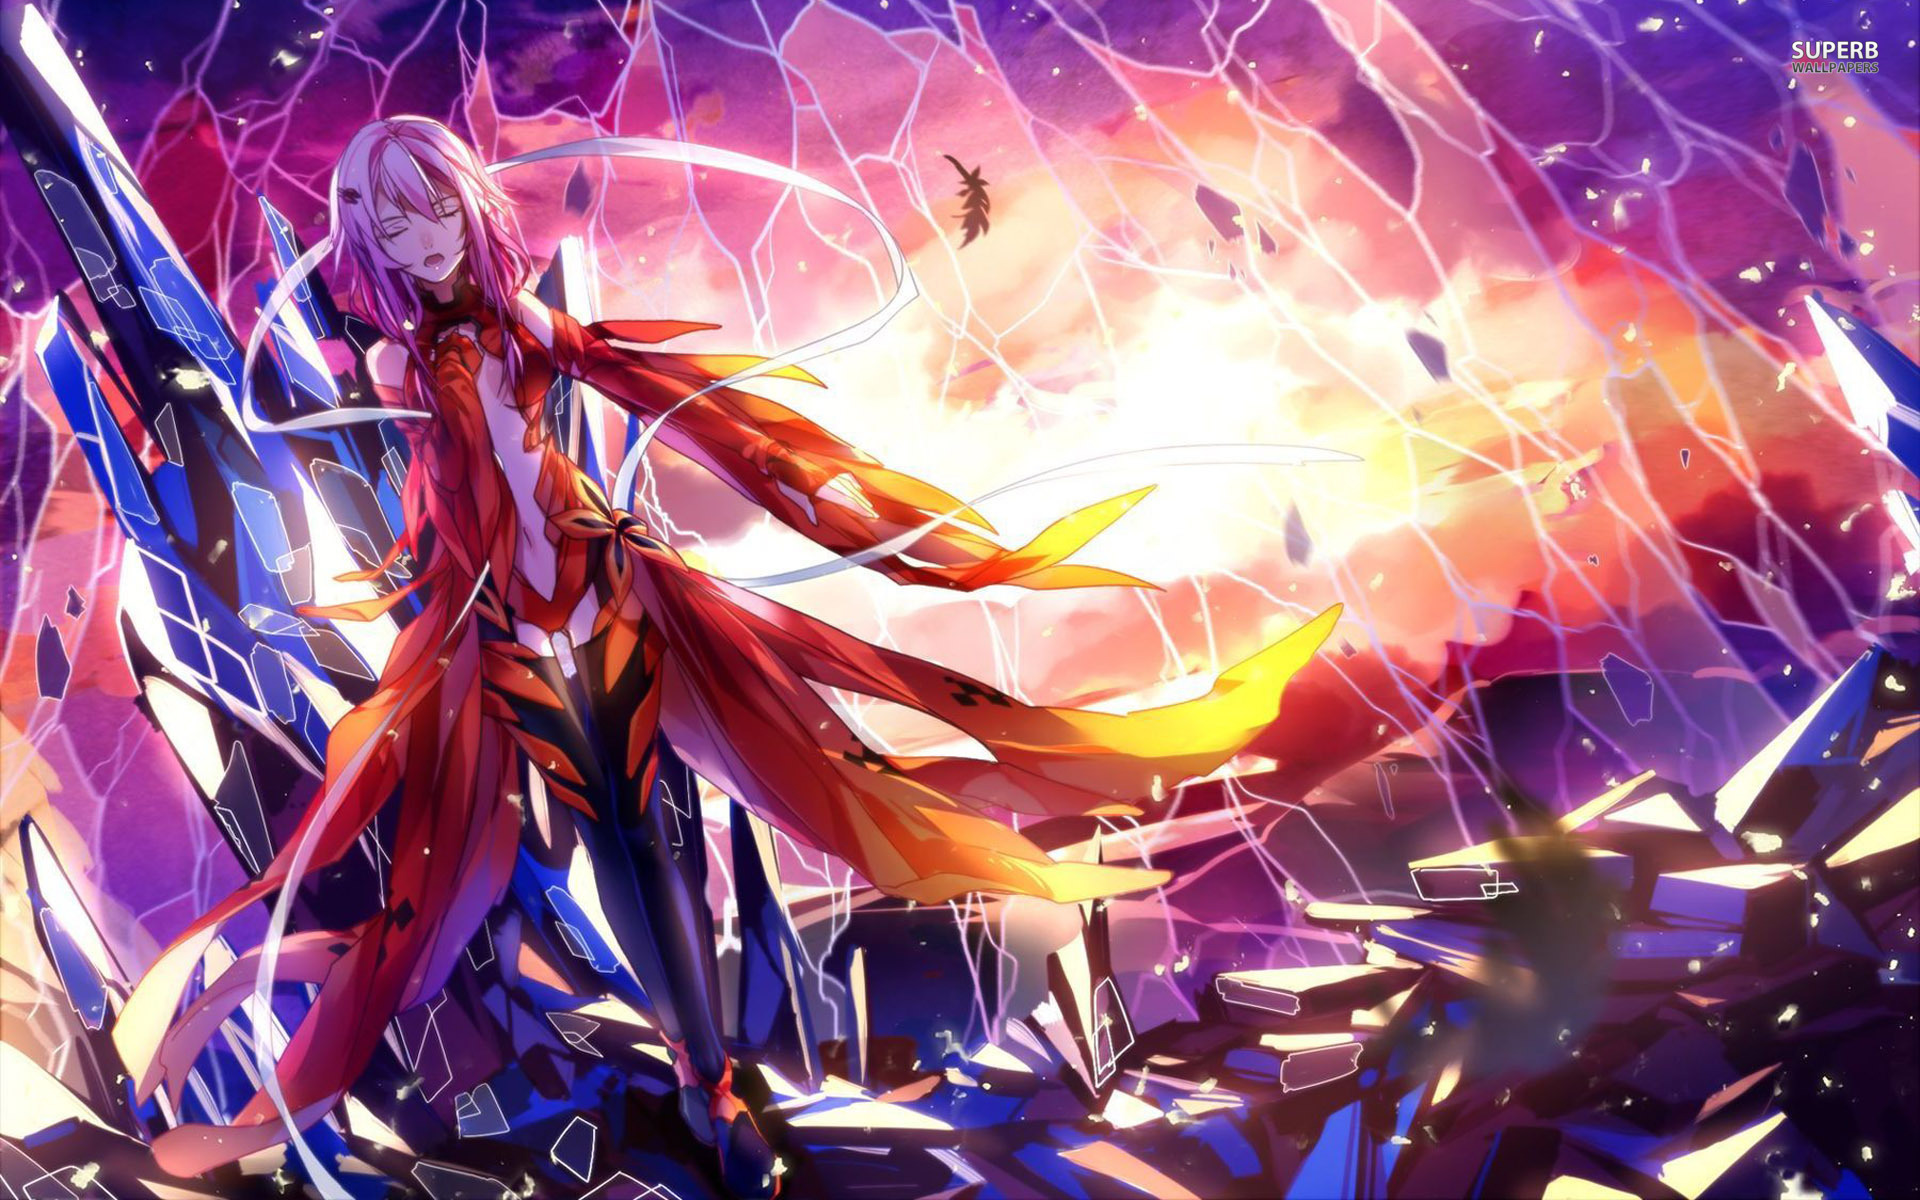 Guilty Crown Wallpaper Inori: Guilty Crown Wallpaper